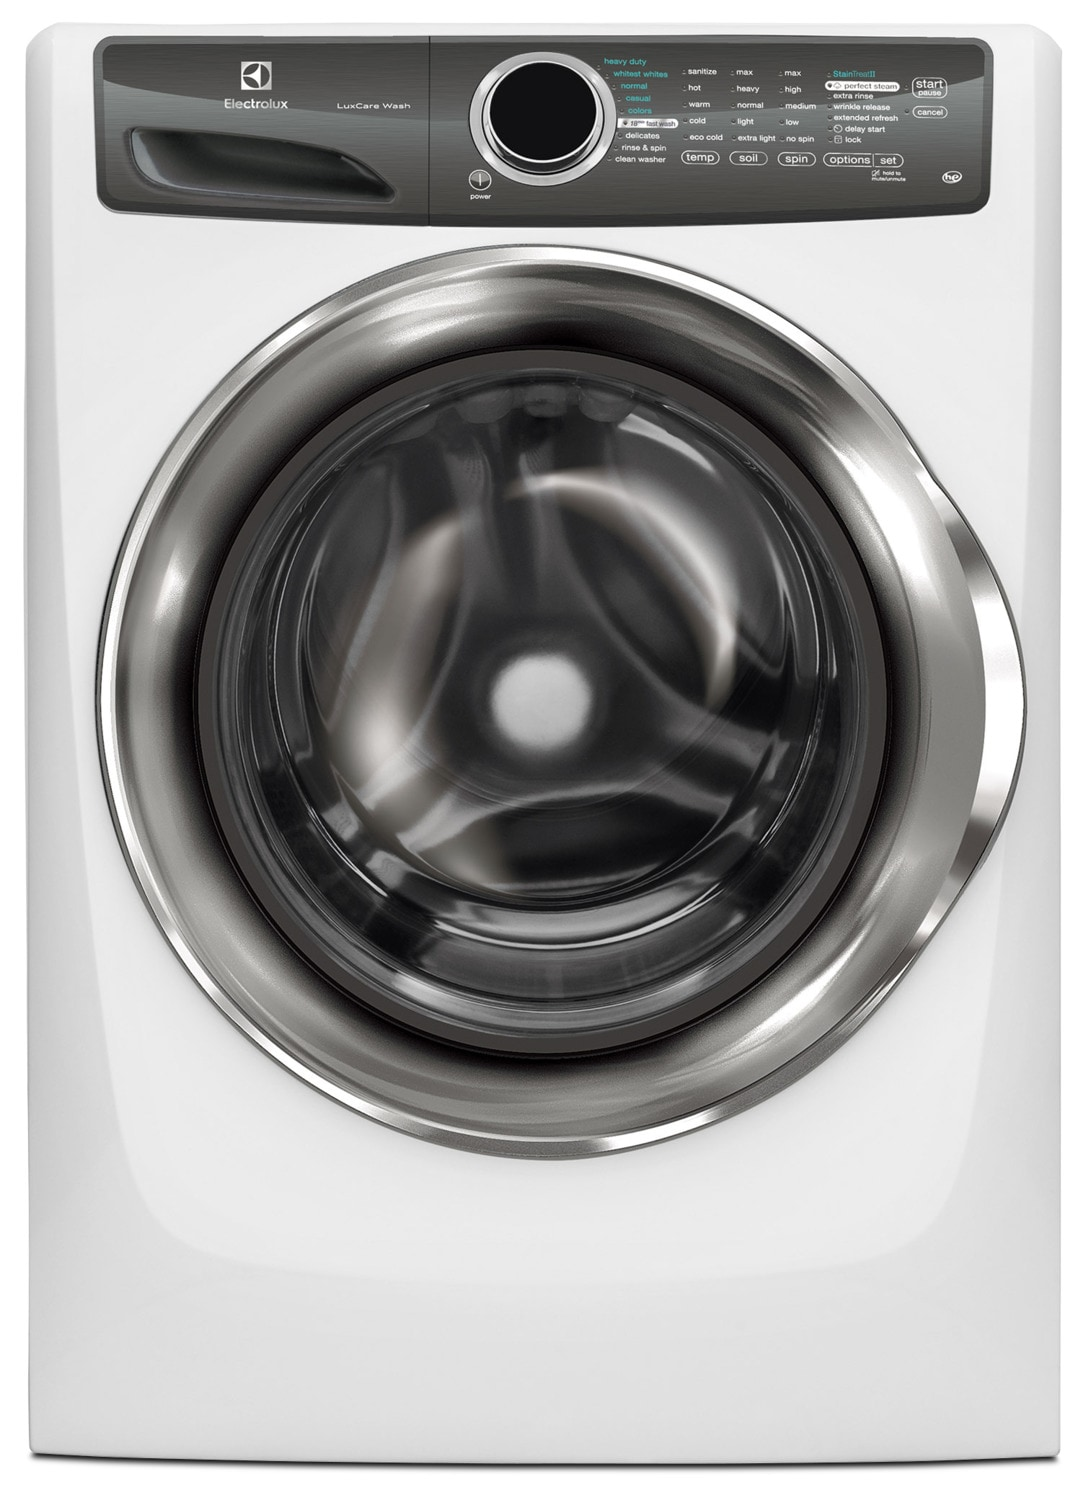 Electrolux White Front-Load Washer (5.0 Cu. Ft) - EFLS517SIW